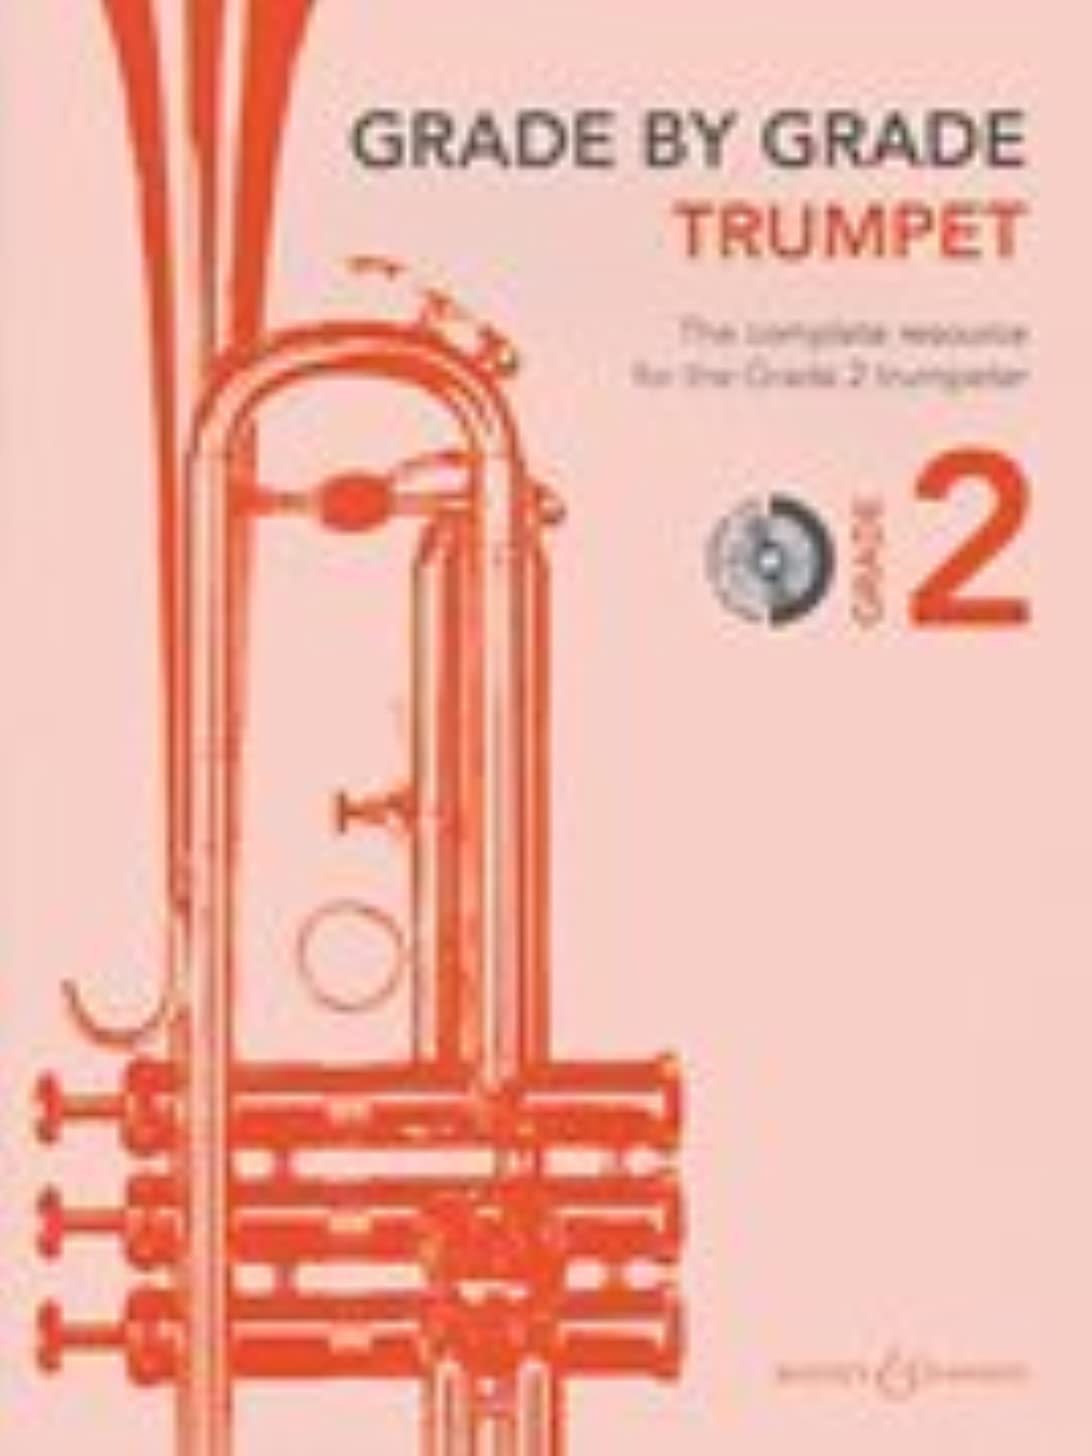 Grade by Grade - Trumpet (Grade 2): With CDs of Performances and Accompaniments